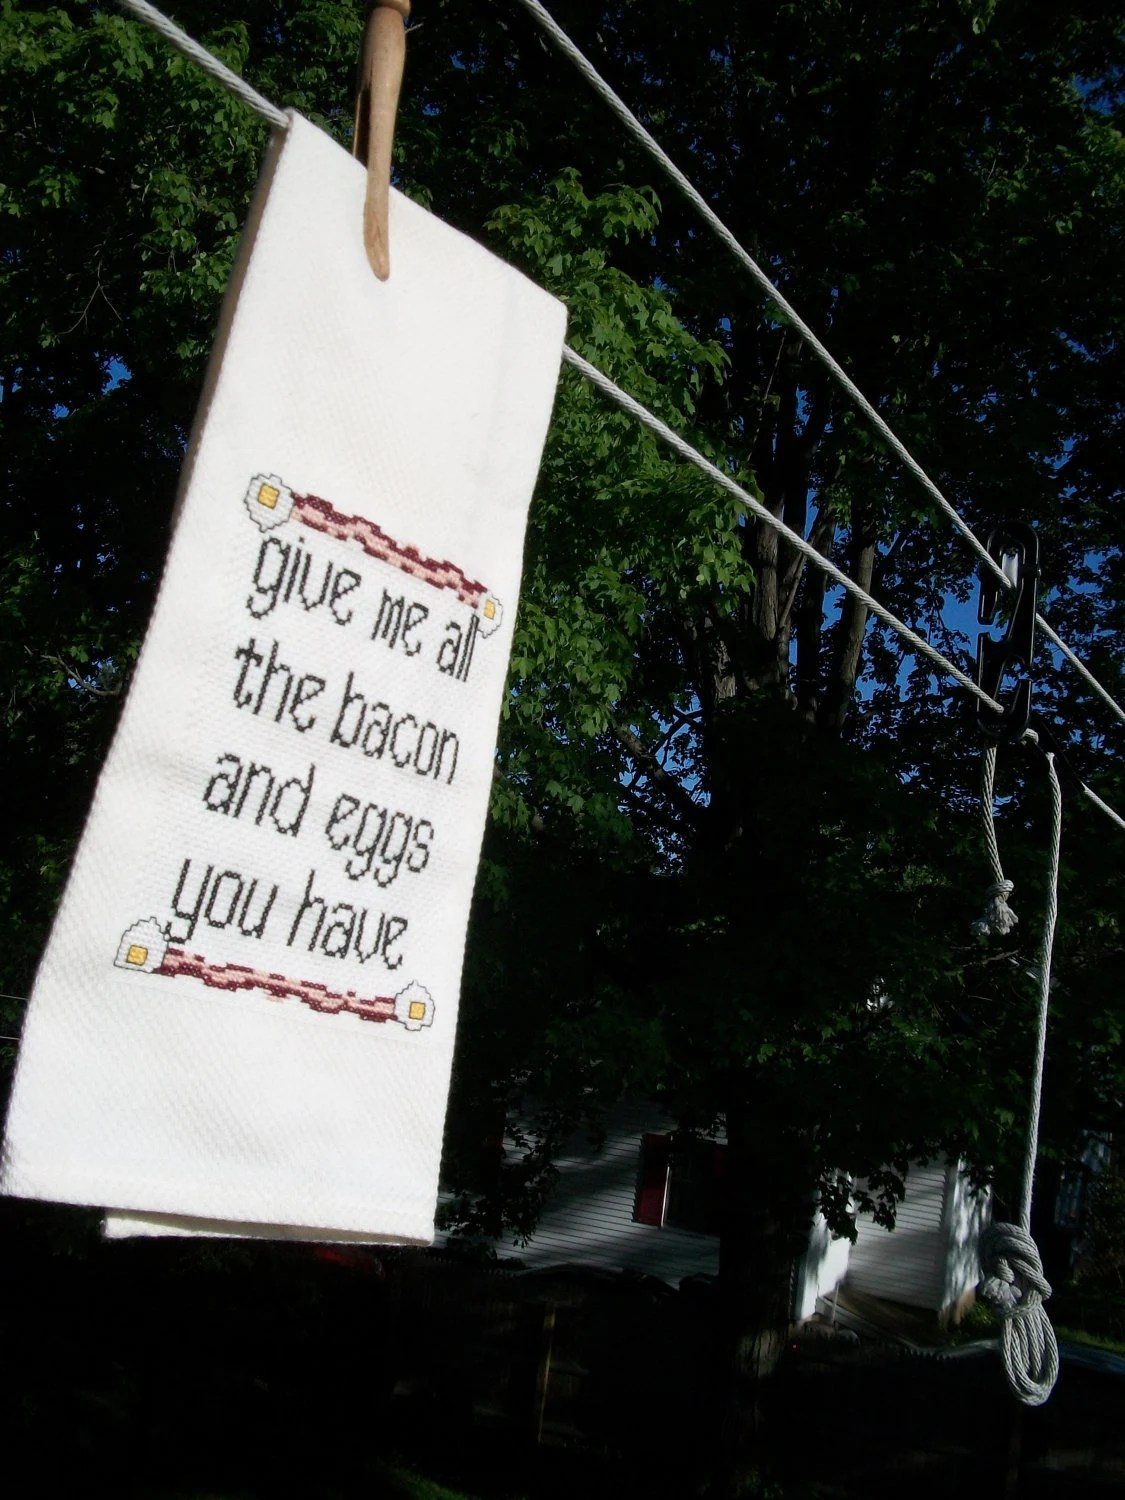 Cross stitched towel-- Give me all the bacon and eggs you have ($45.00) by aliciawatkins. So, this is a great item for anyone who loves Parks and Recreation. I mean, this quote from the show is a classic and the design matches perfectly. Her shop also features other fun cross stitch from TV shows.